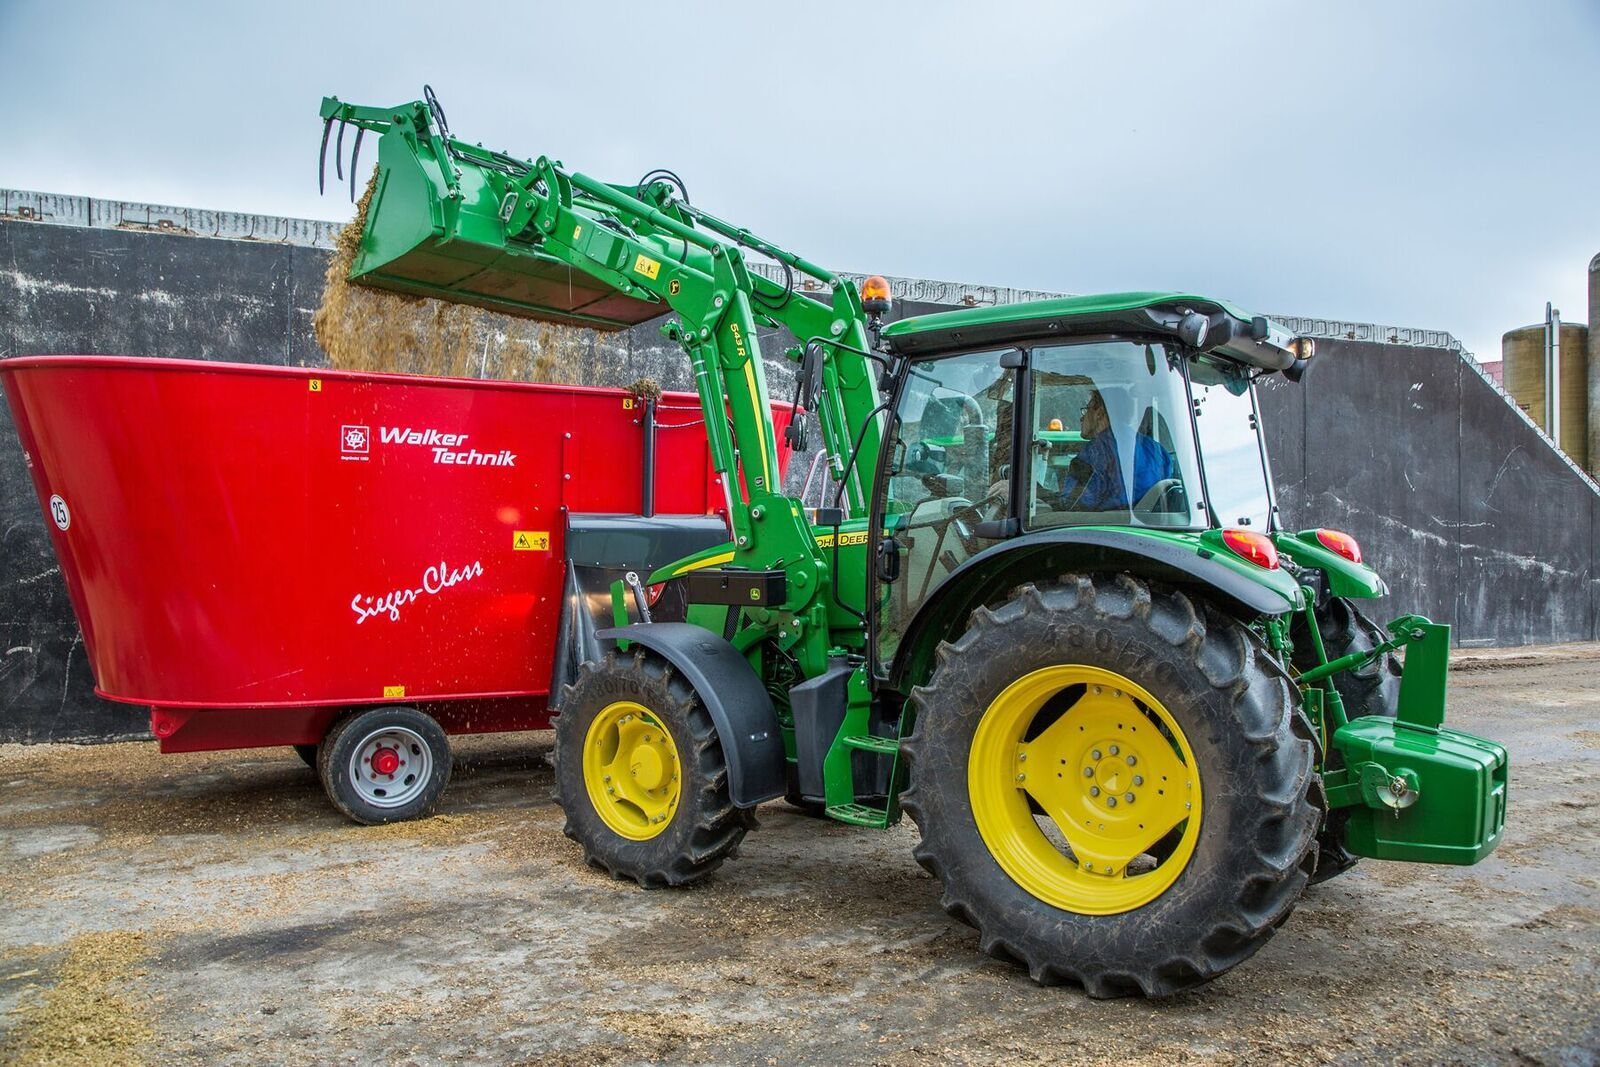 John Deere has revamped its 5M and 5E-series tractors which are aimed at the livestock sector and light arable work